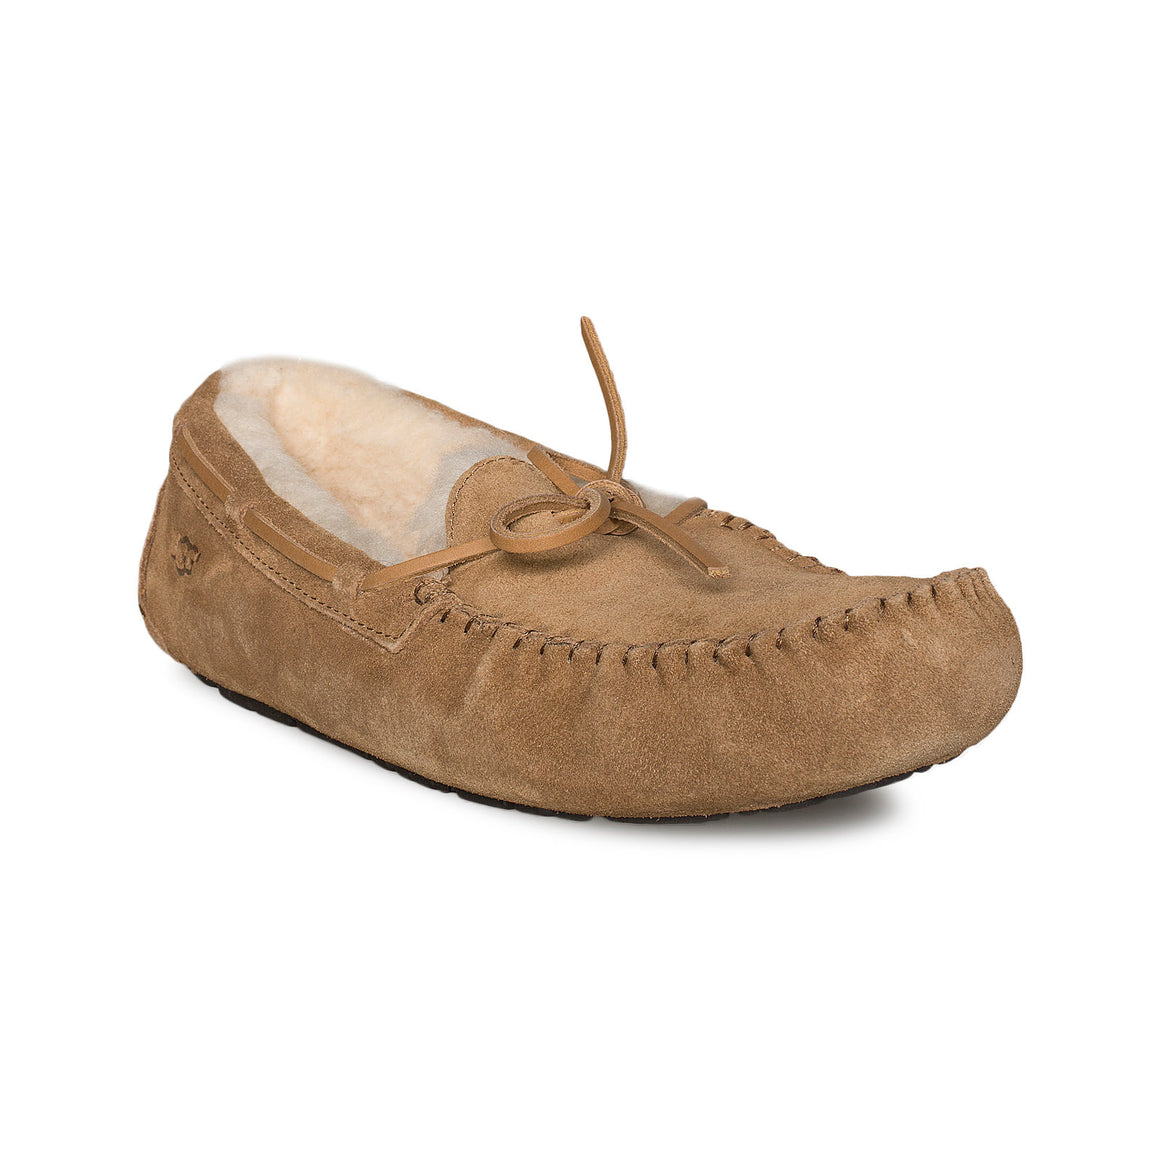 UGG Olsen Chestnut Slippers - Men's